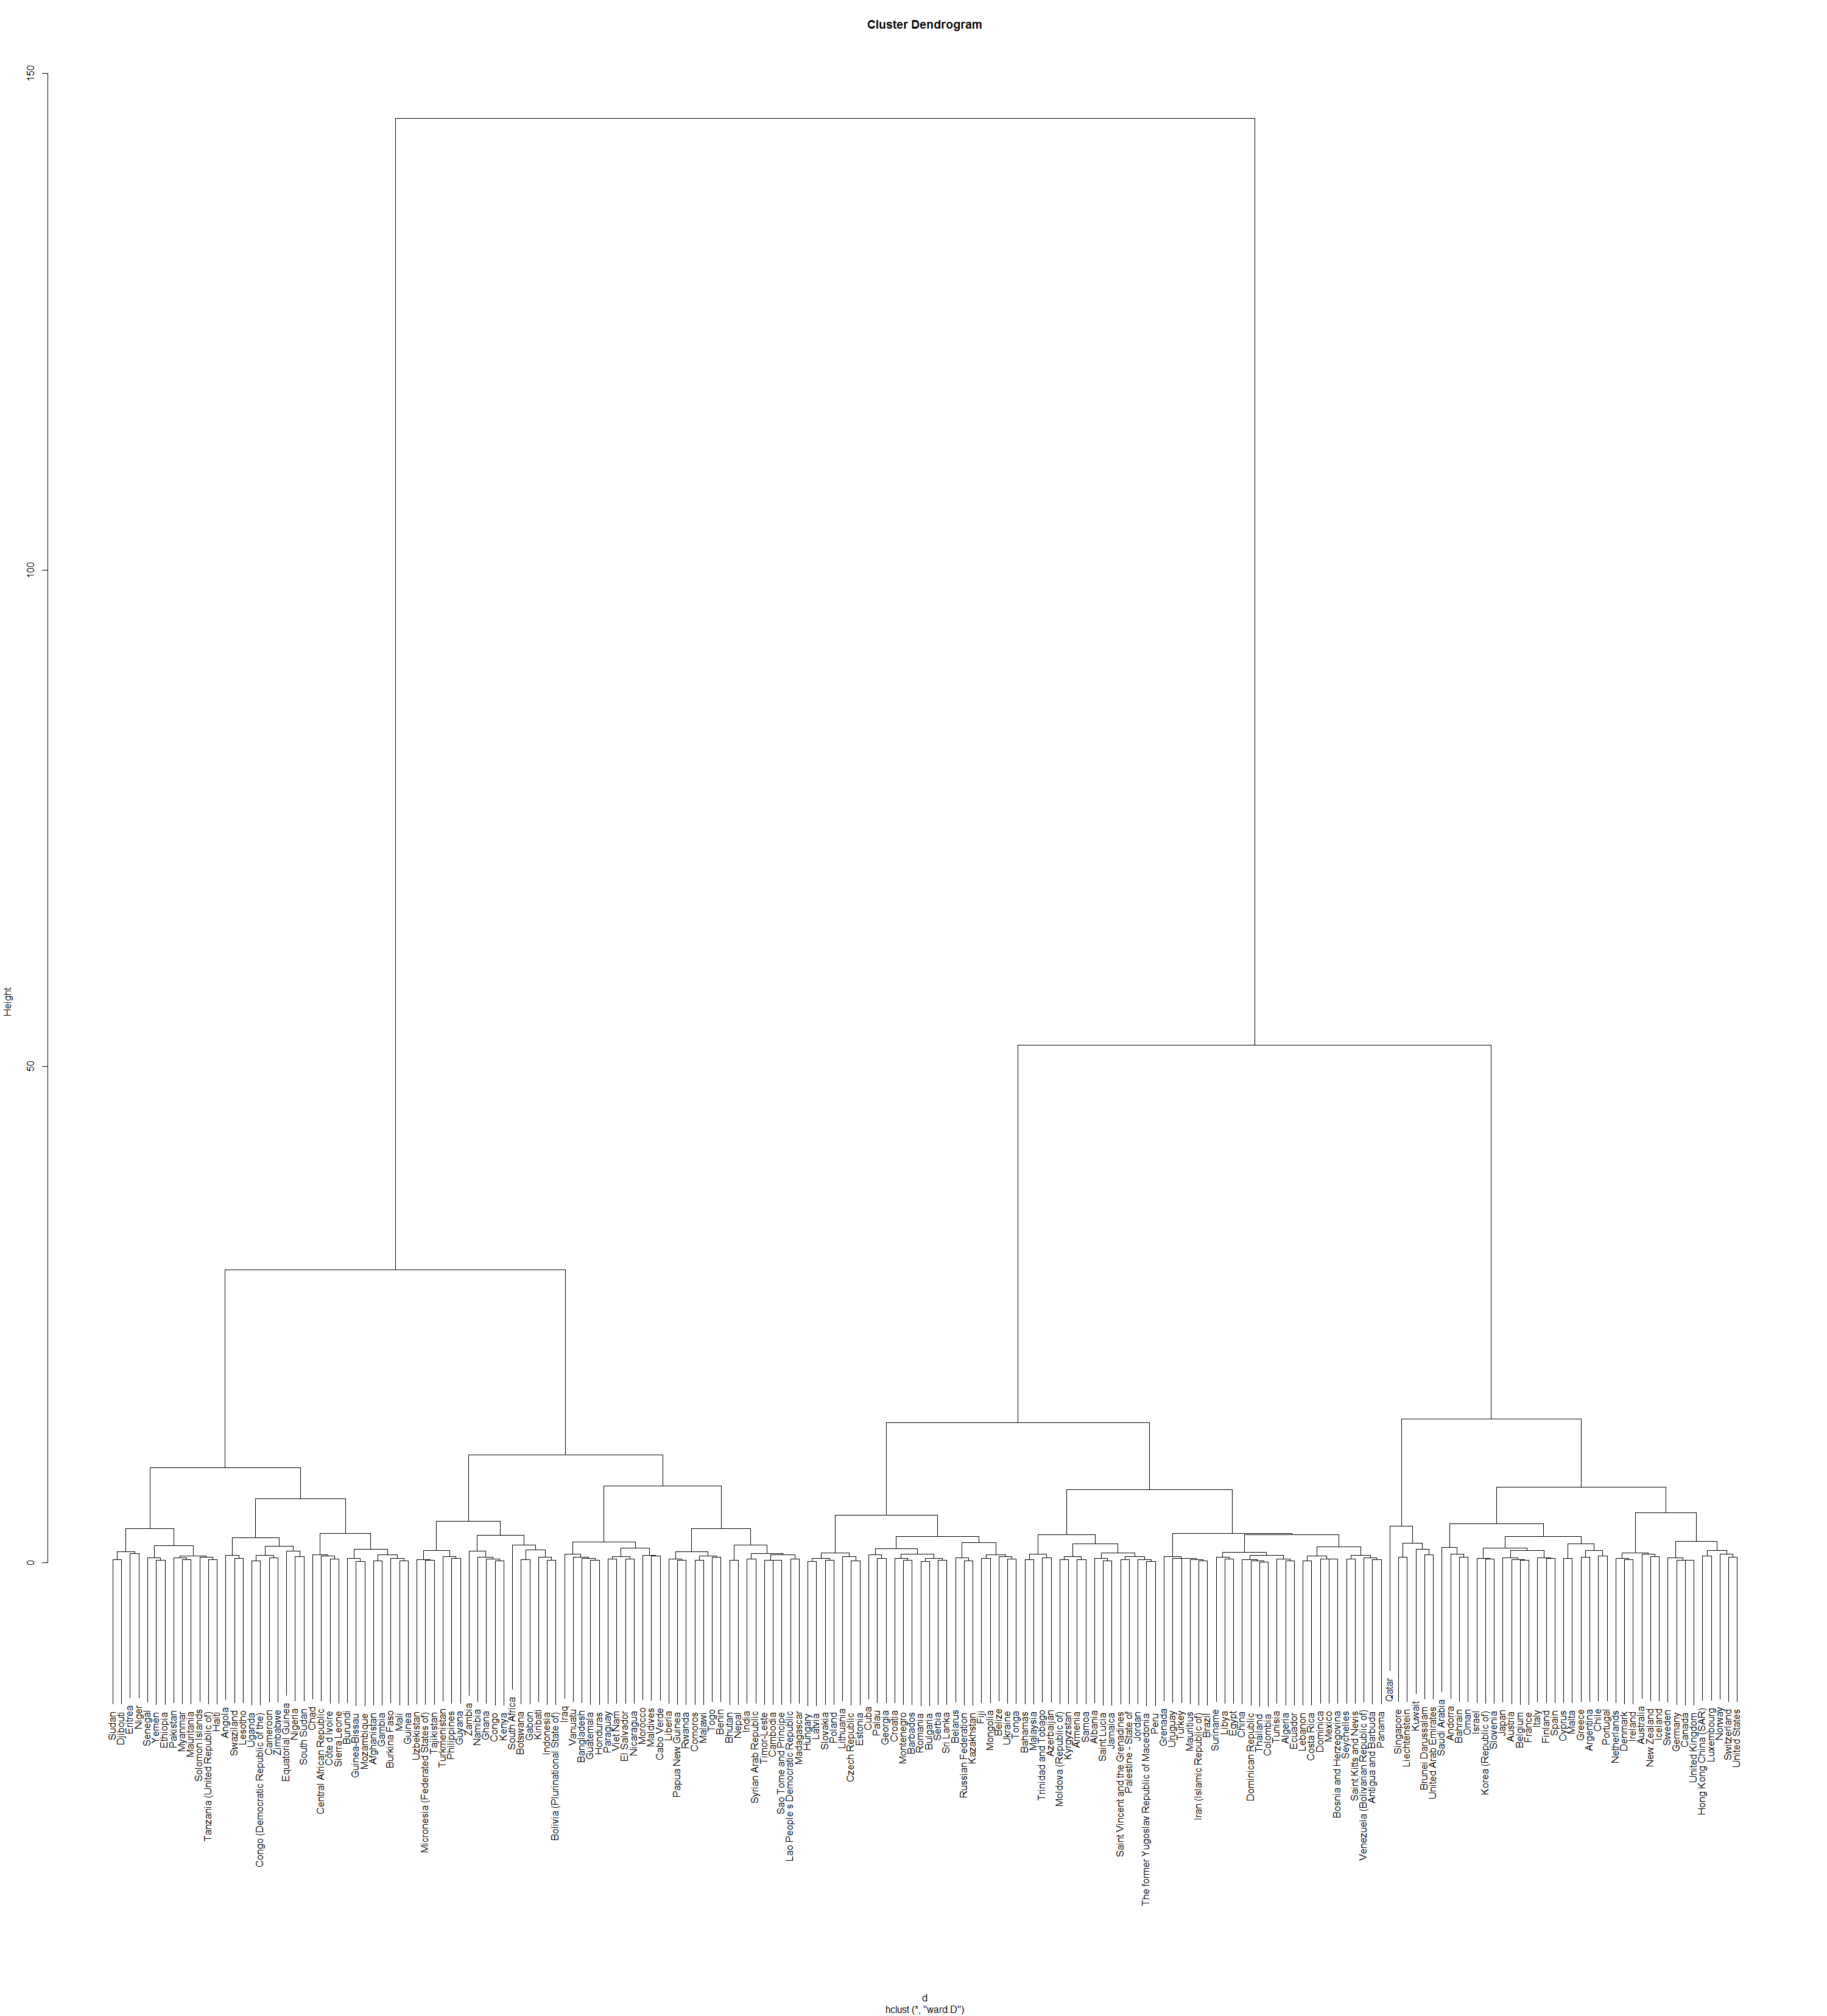 Dendrogram for the HDI